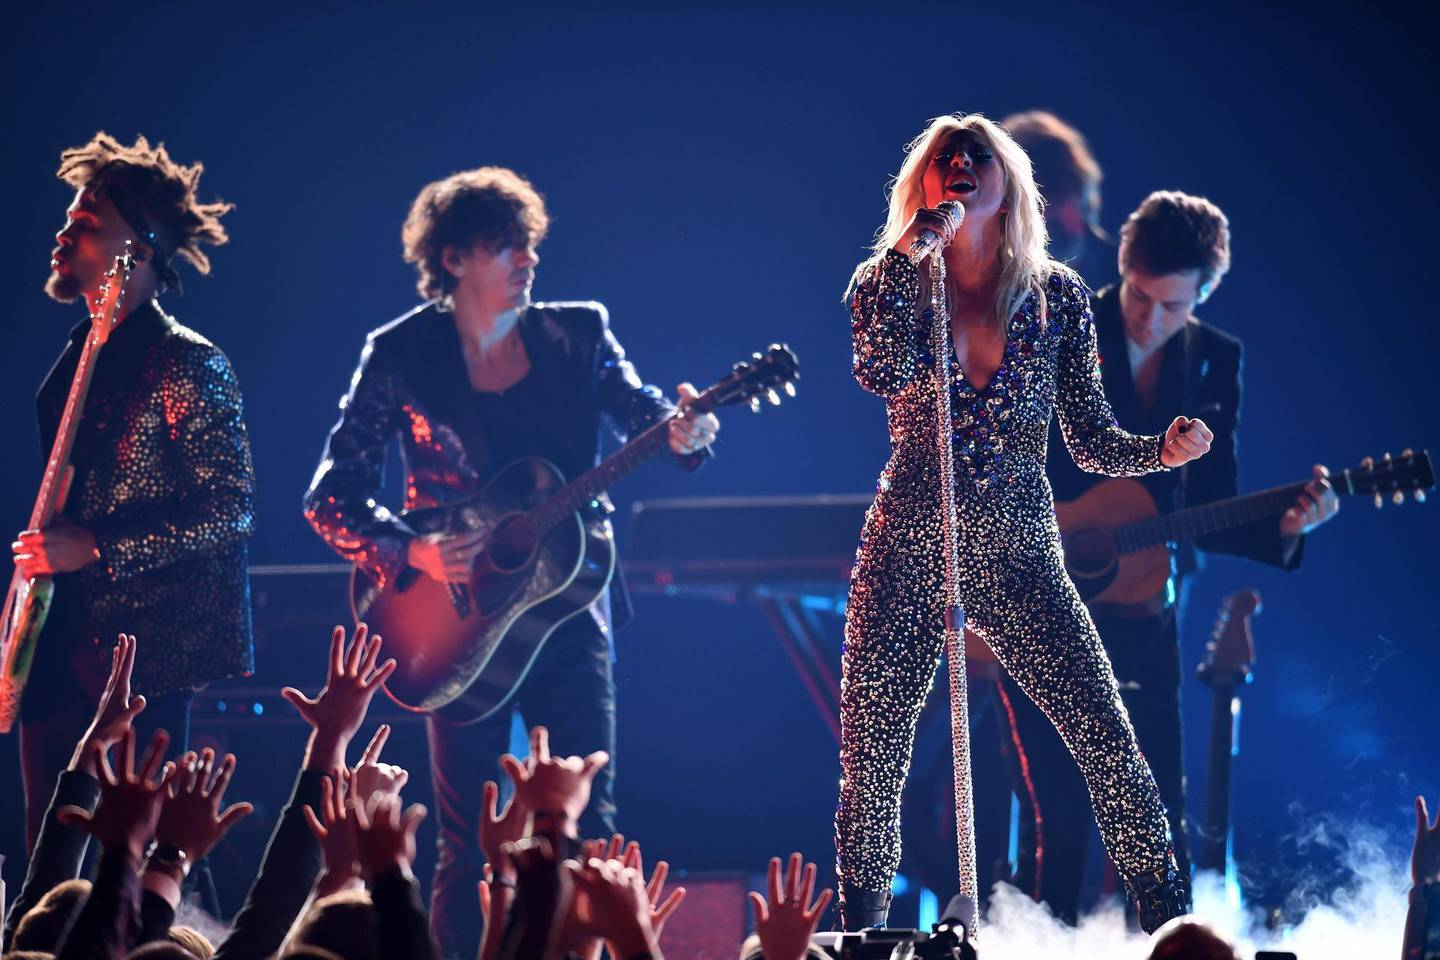 US singer-songwriter Lady Gaga performs onstage during the 61st Annual Grammy Awards on February 10, 2019, in Los Angeles.  / AFP / Robyn Beck